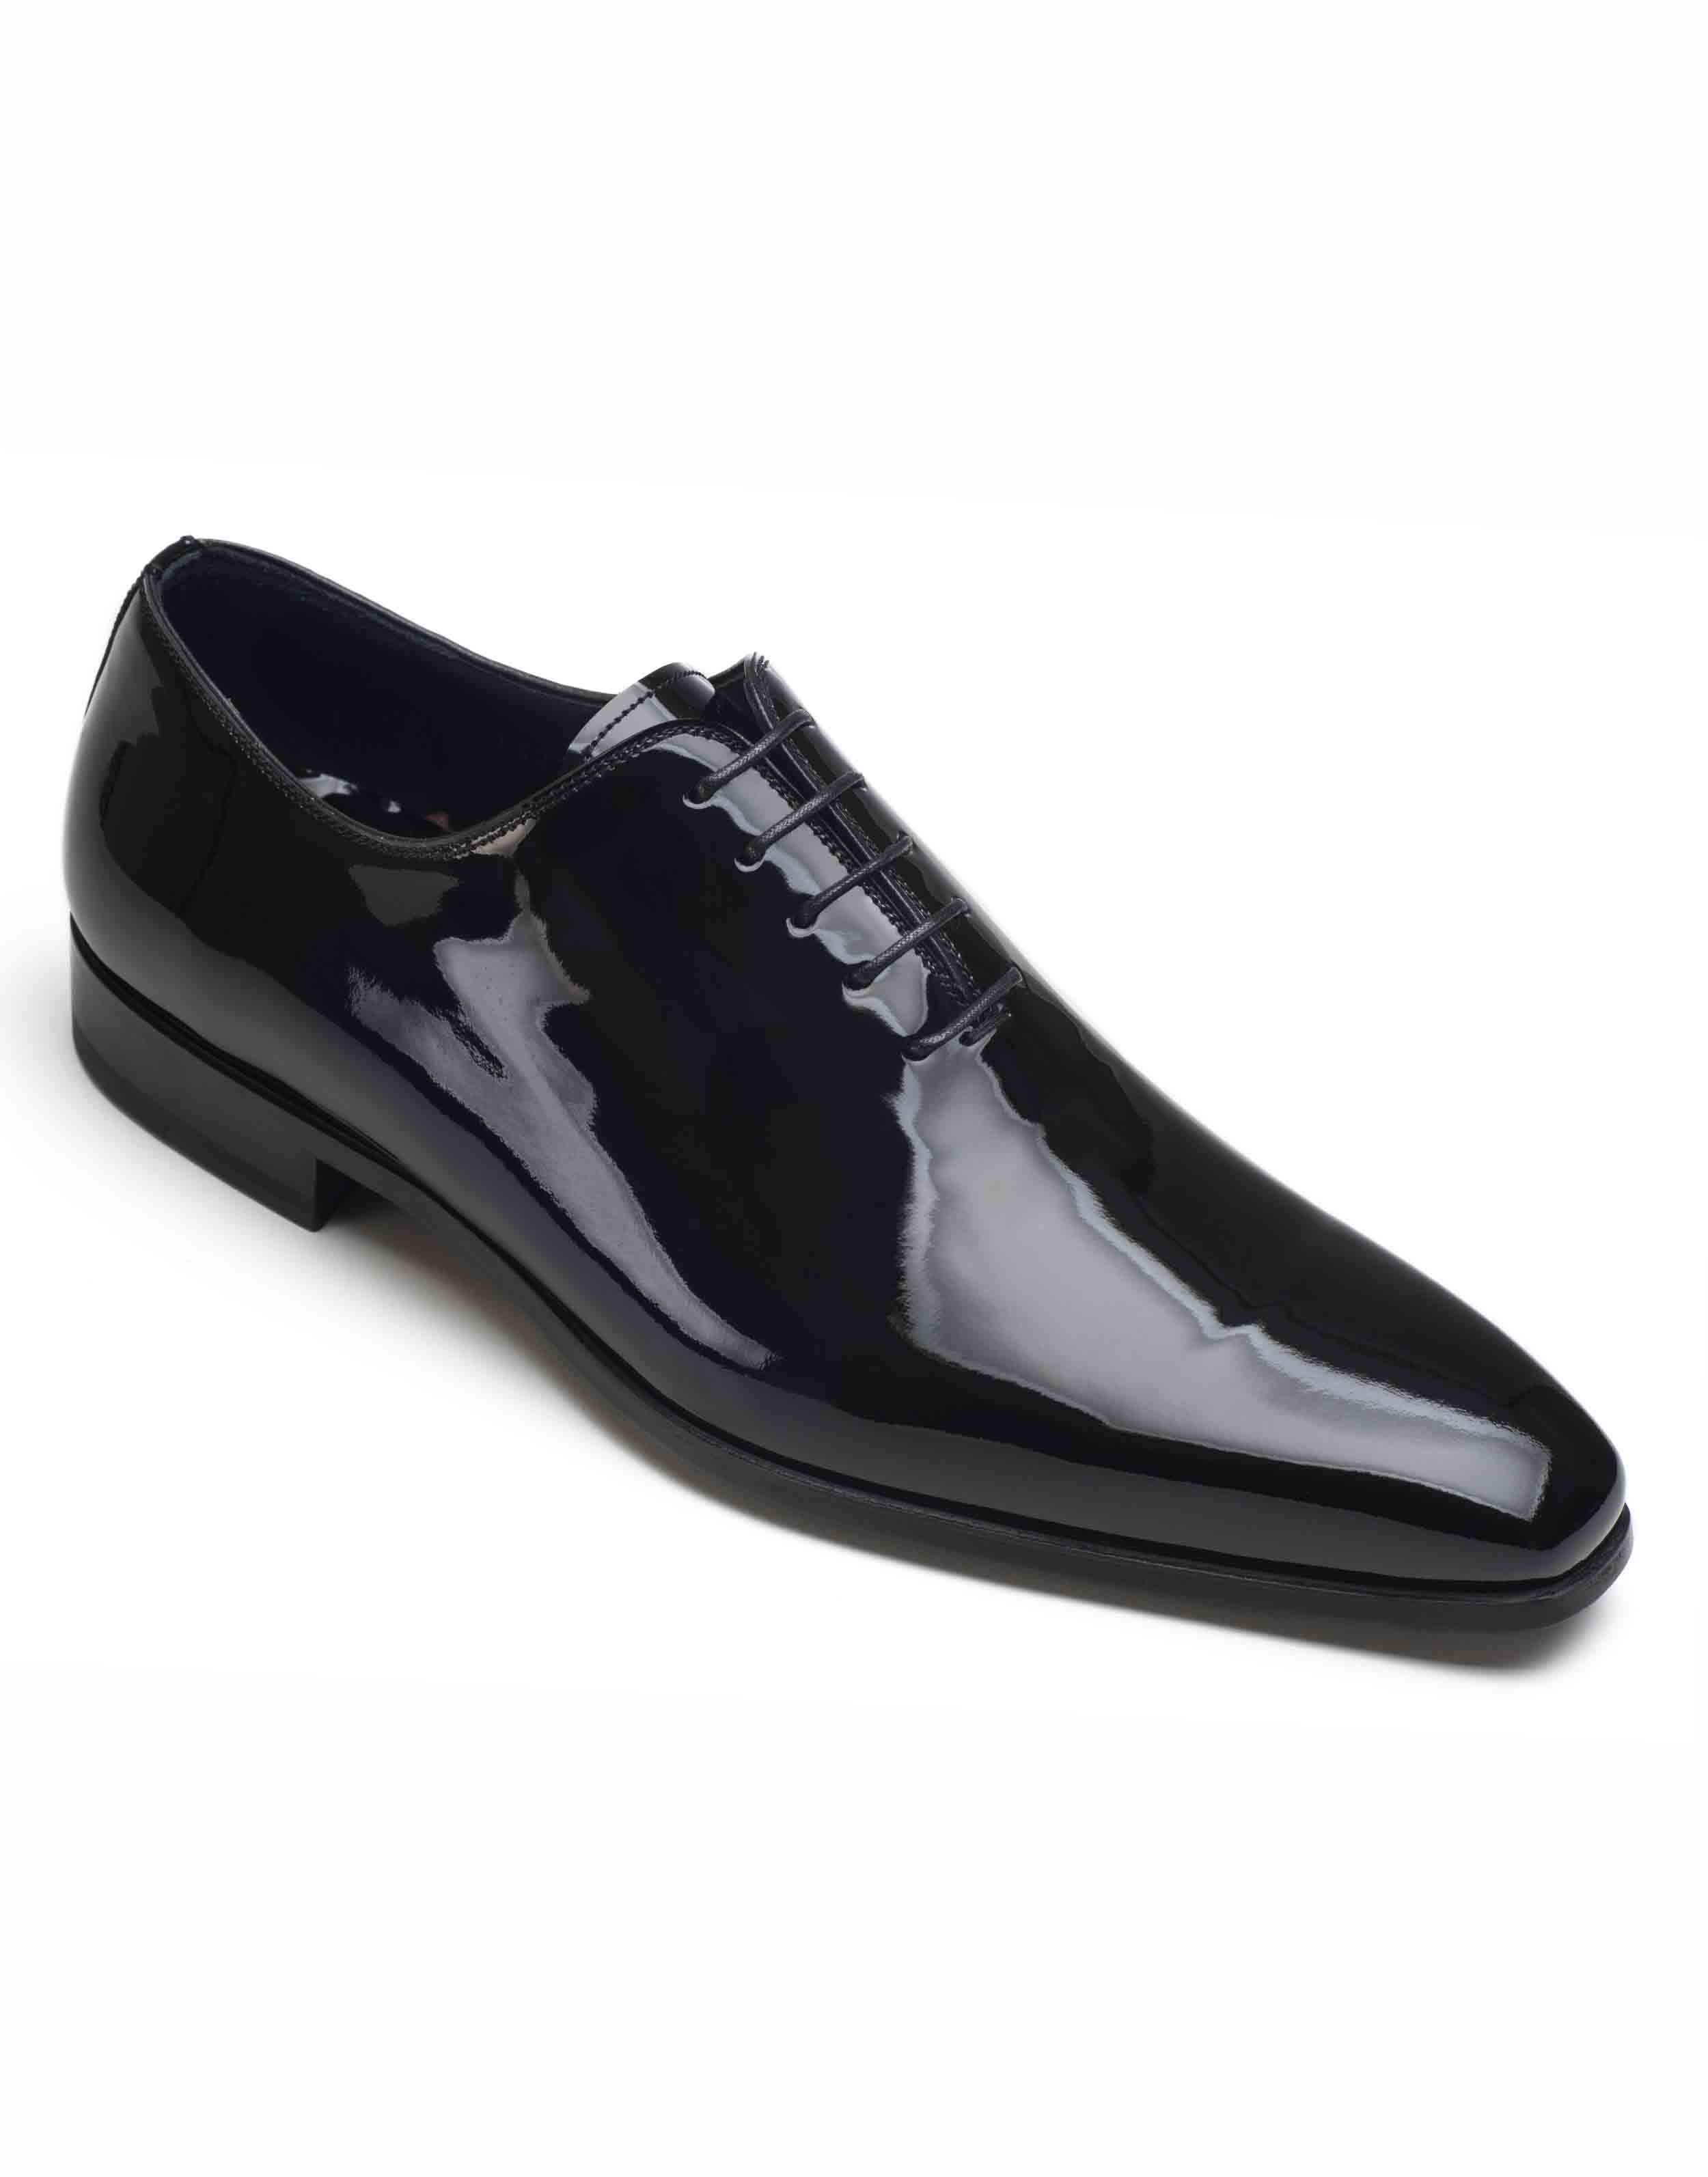 PATENT LEATHER OXFORD SHOE2